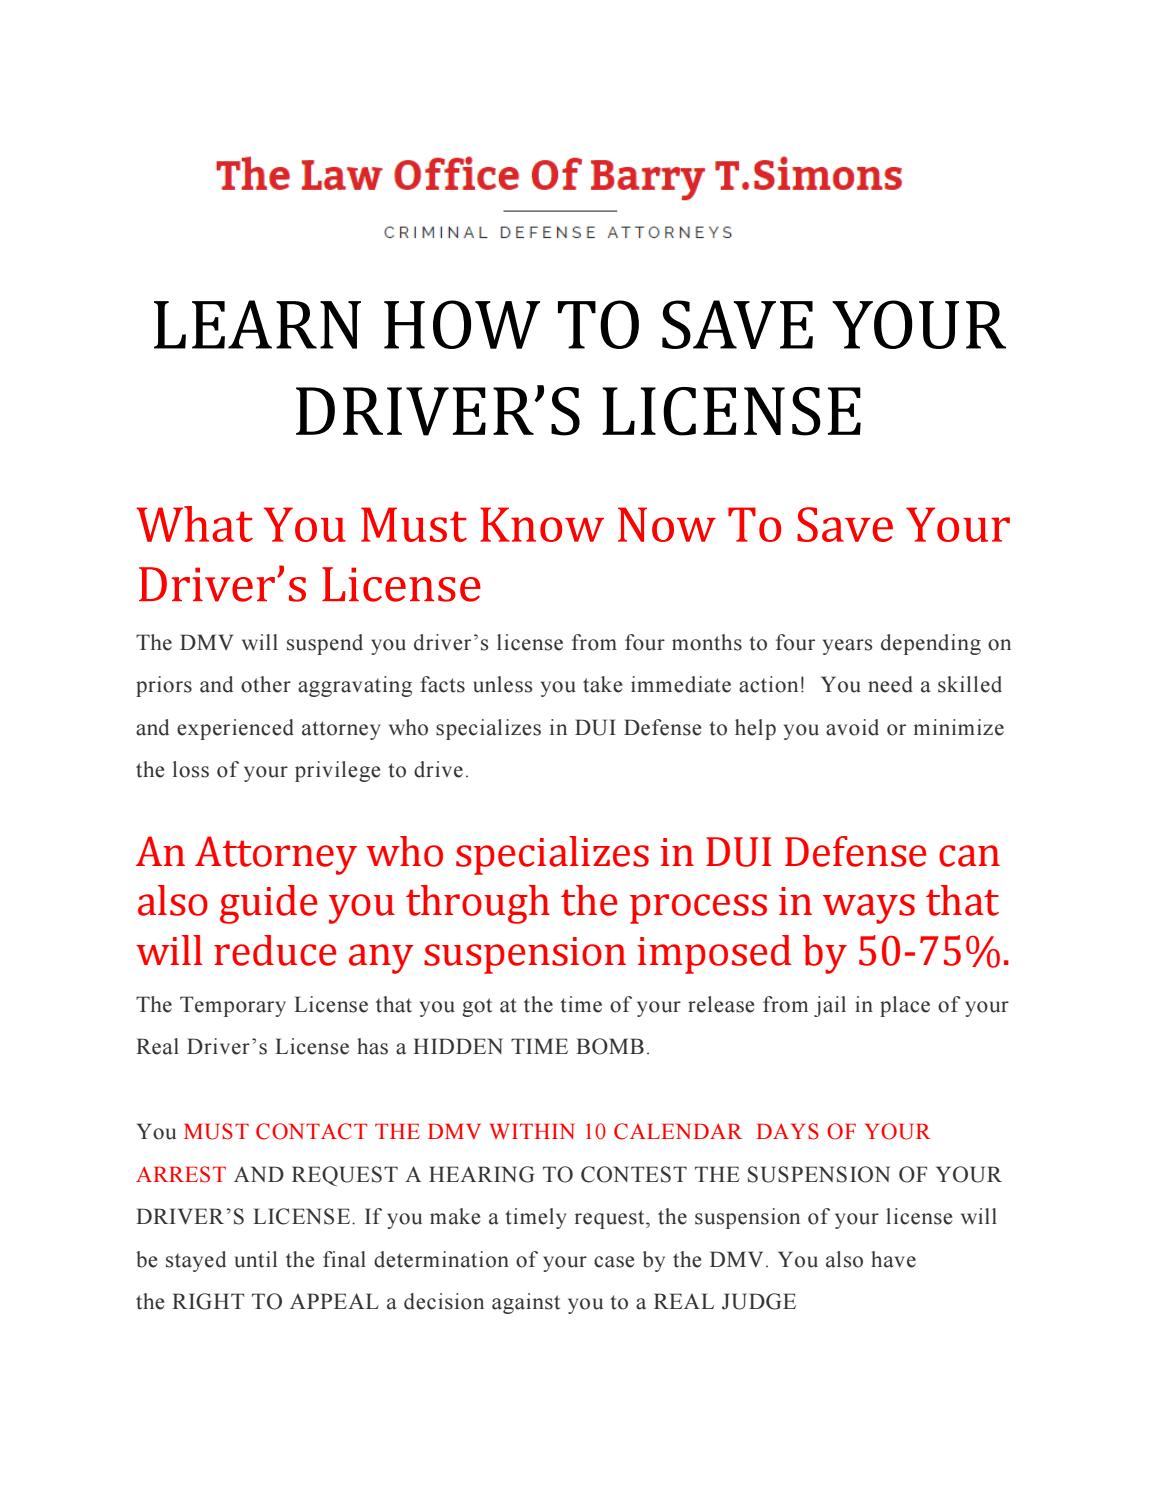 LEARN HOW TO SAVE YOUR DRIVER'S LICENSE by